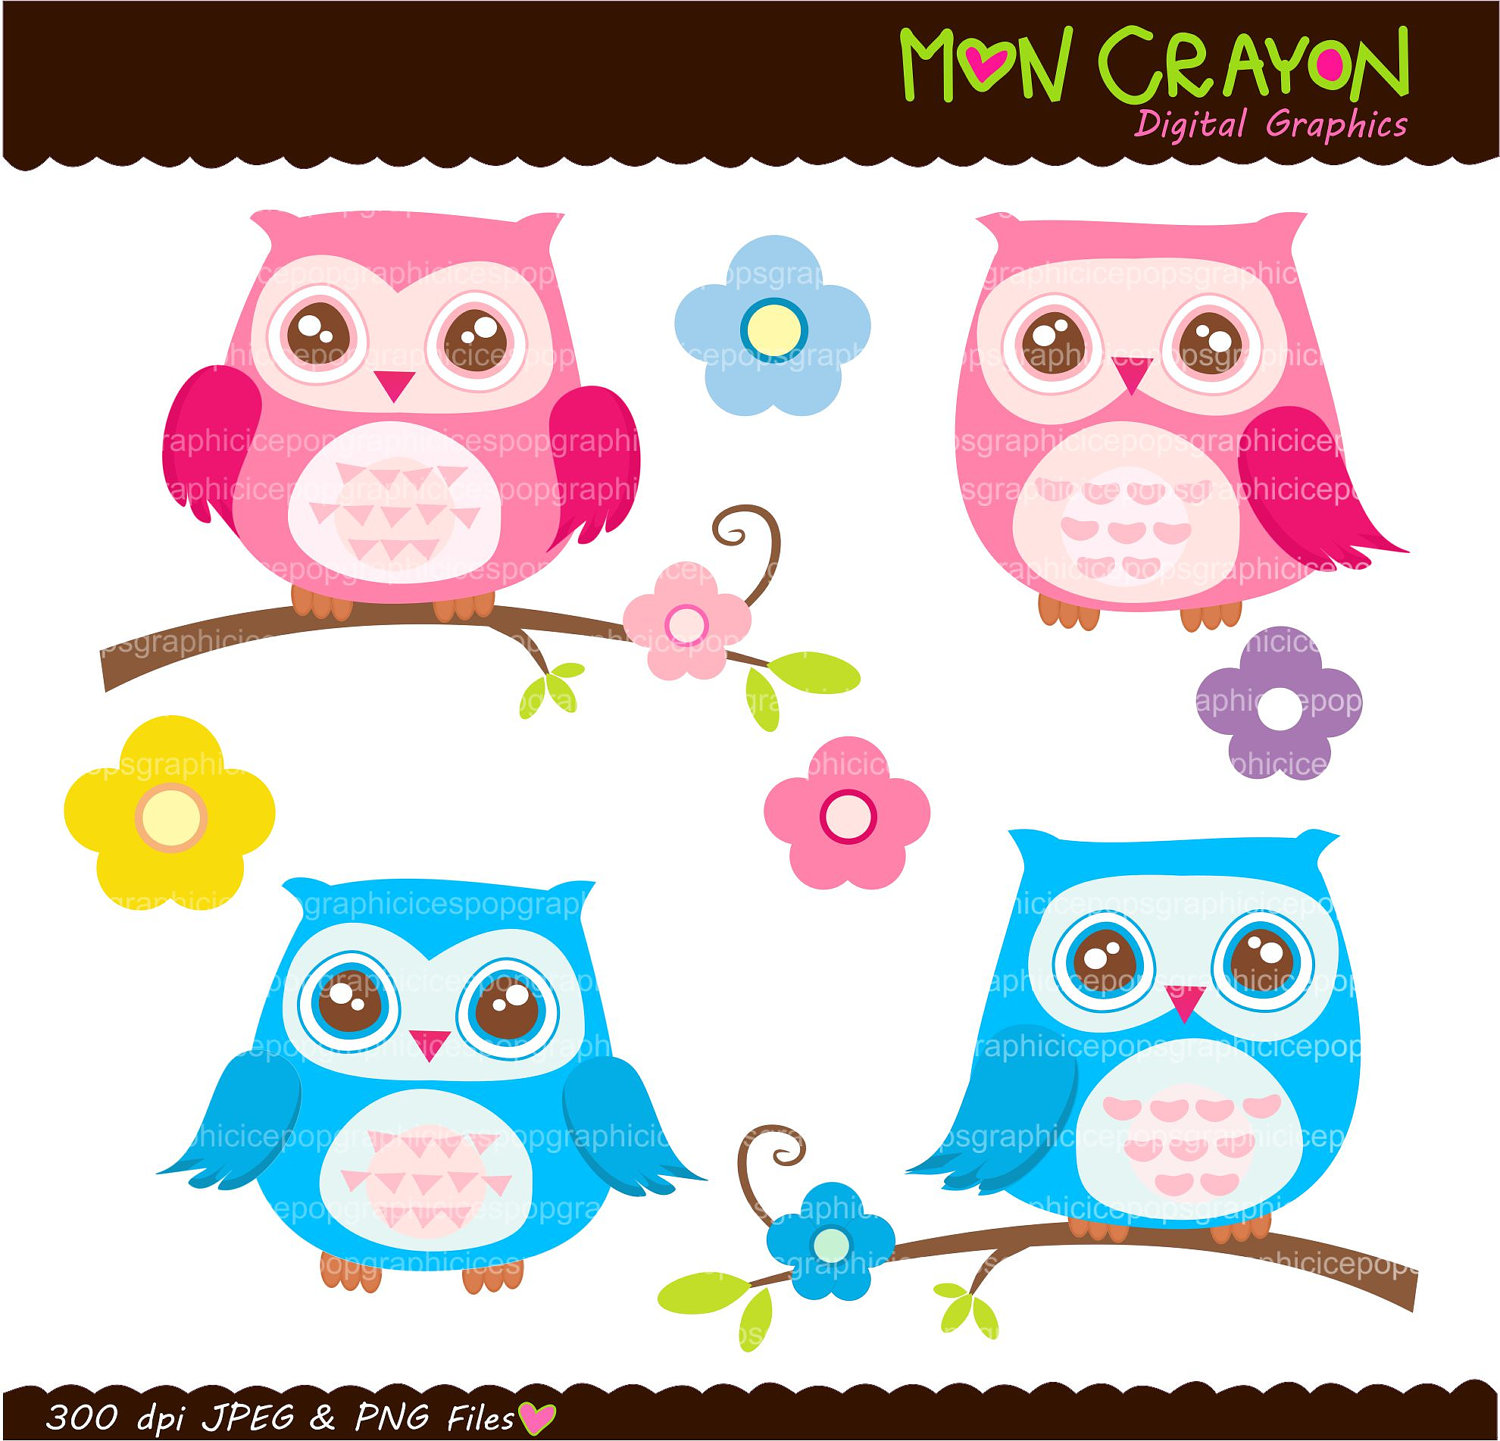 Owl Owl Clip Art Printable Owl Colourful Hoot By Moncrayon